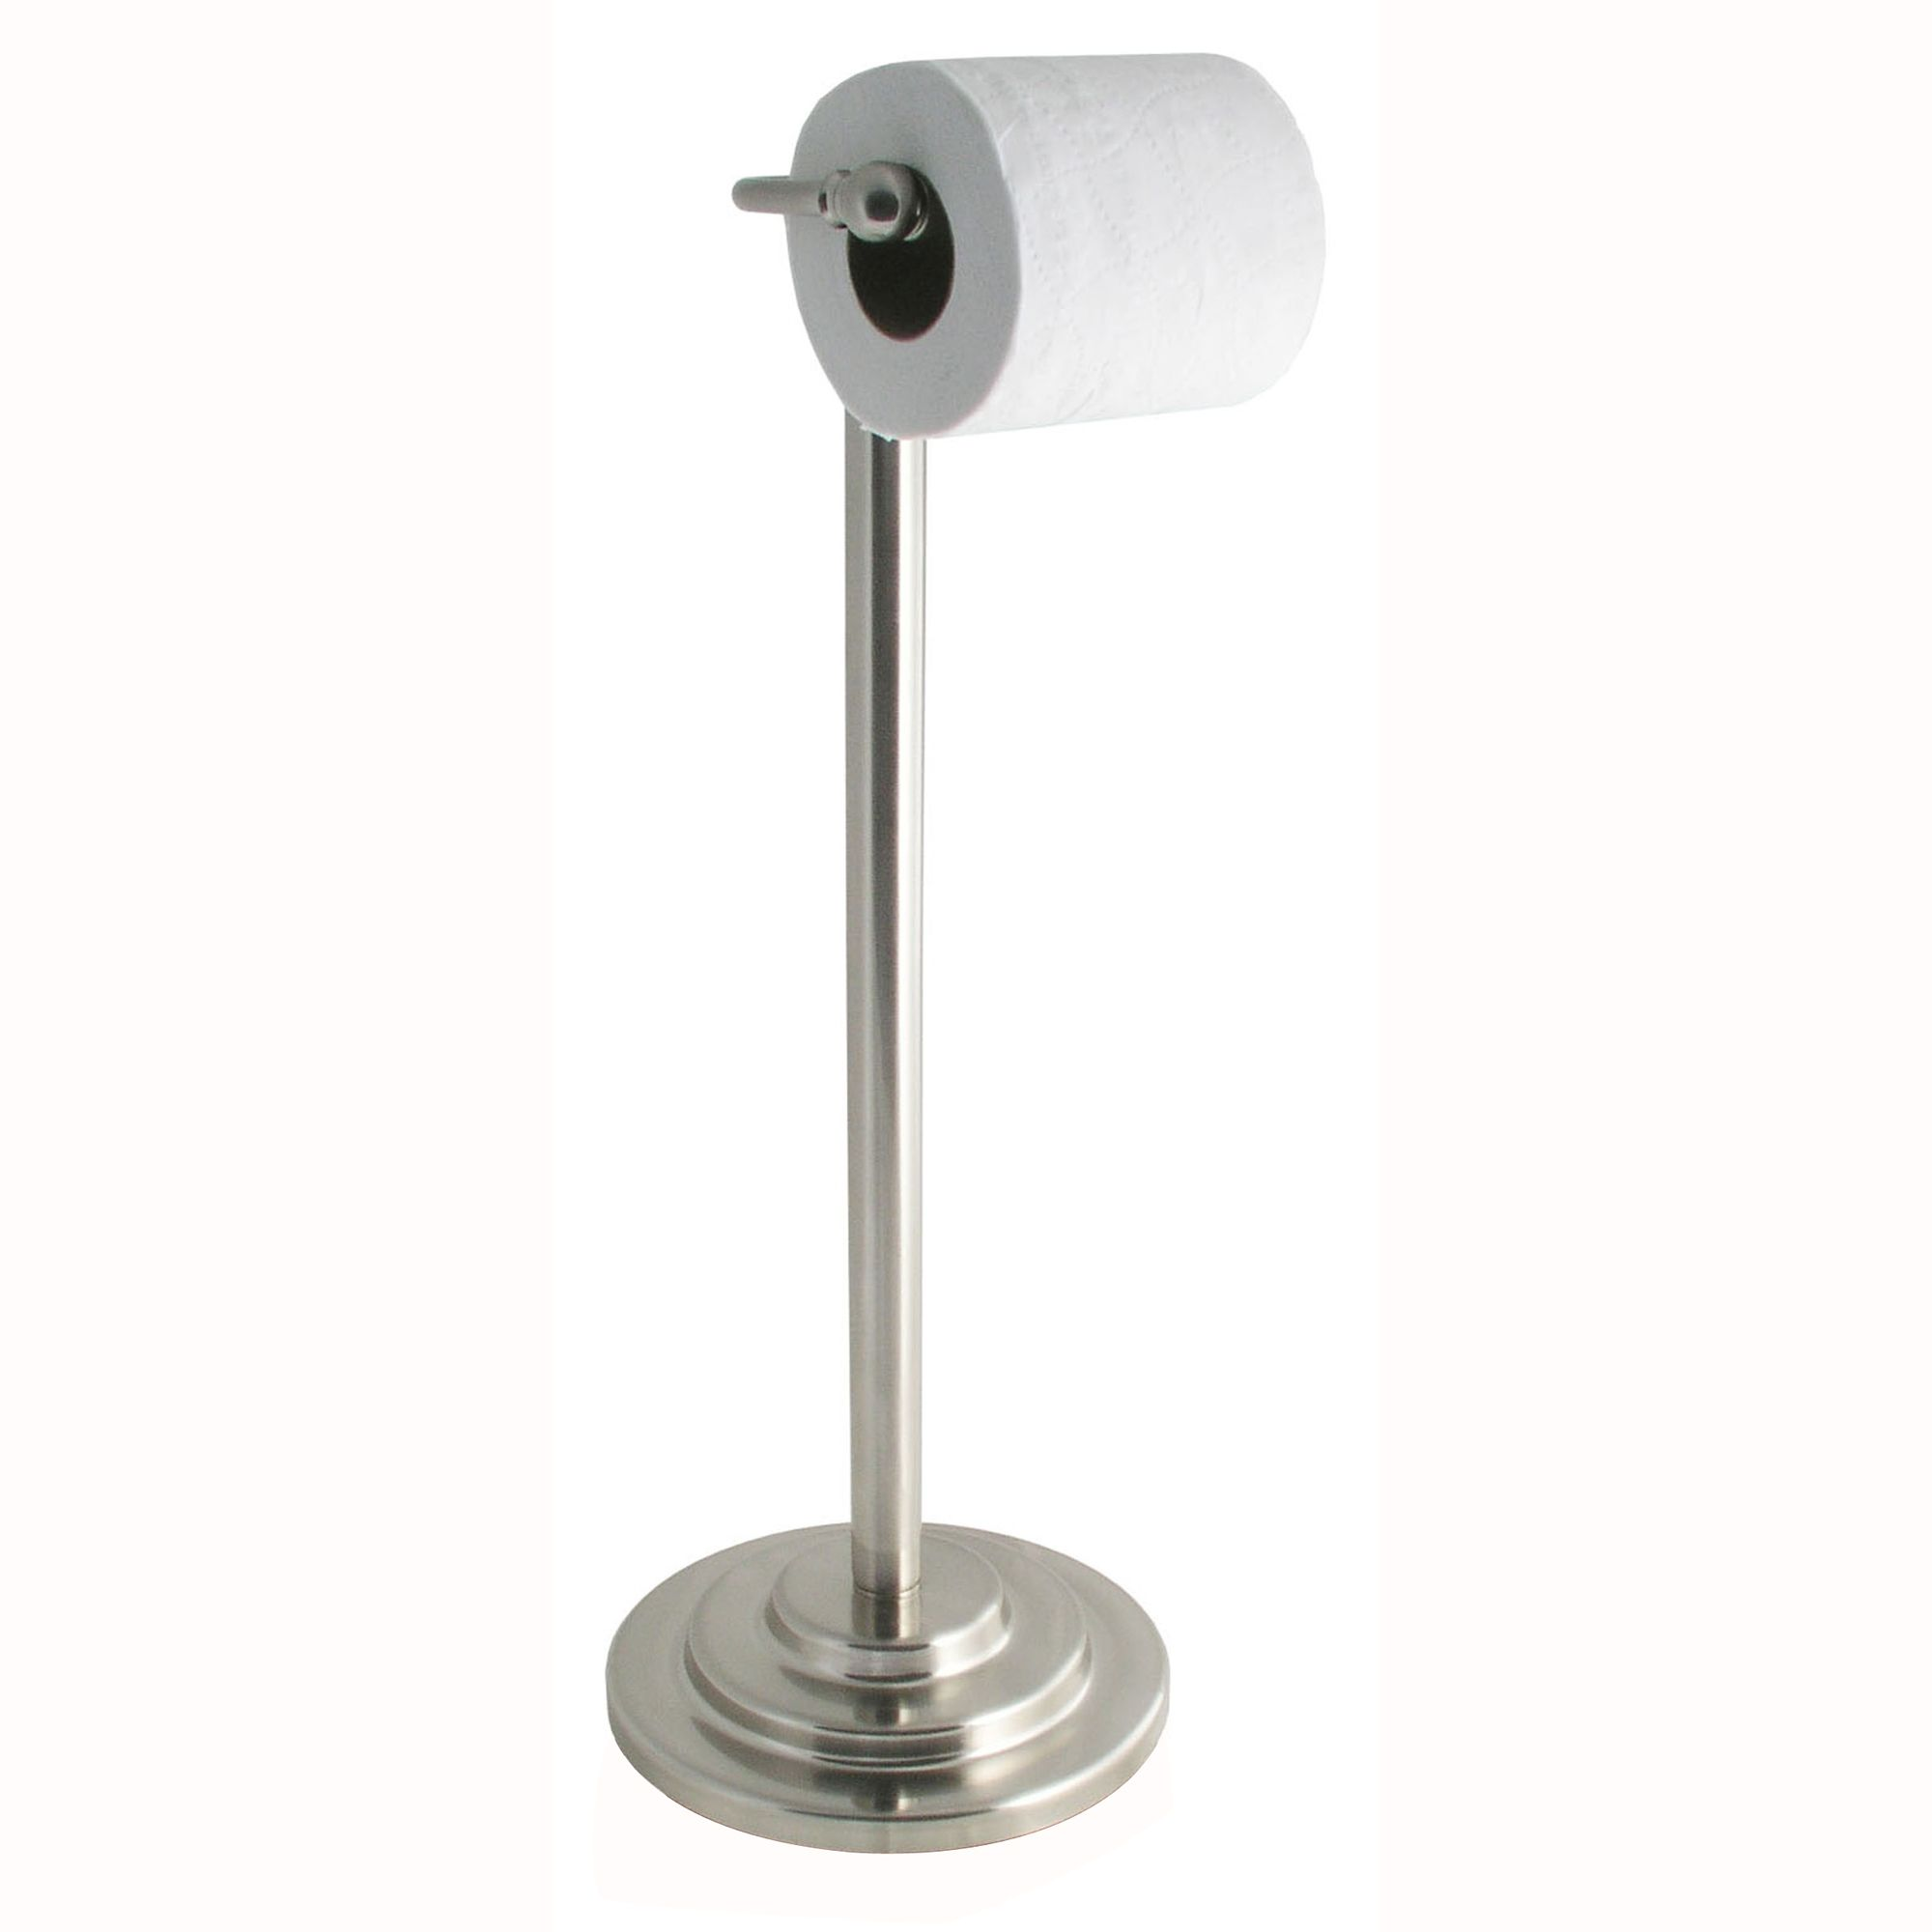 Stainless Steel Toilet Paper Stand Essential Home Ashton Series Pedestal Stainless Steel